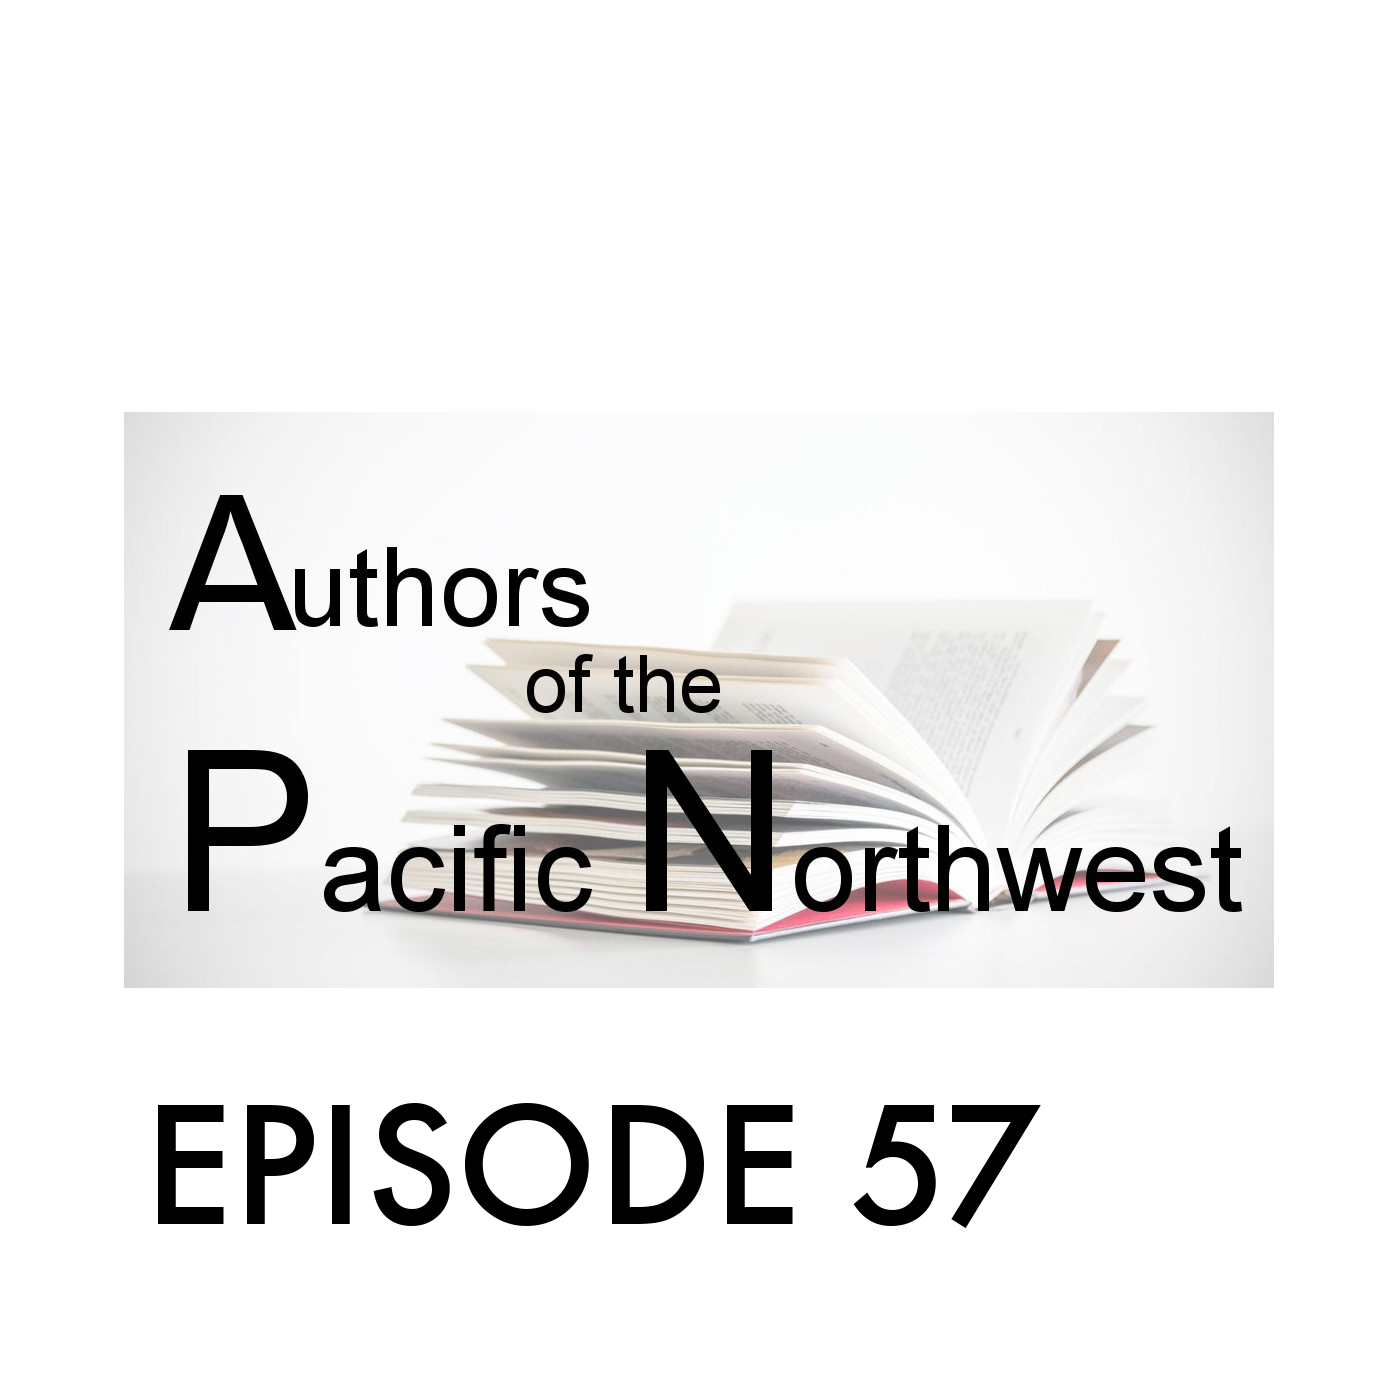 Episode 57: Part 1 of The Writer's Crucible with Philip Kenney